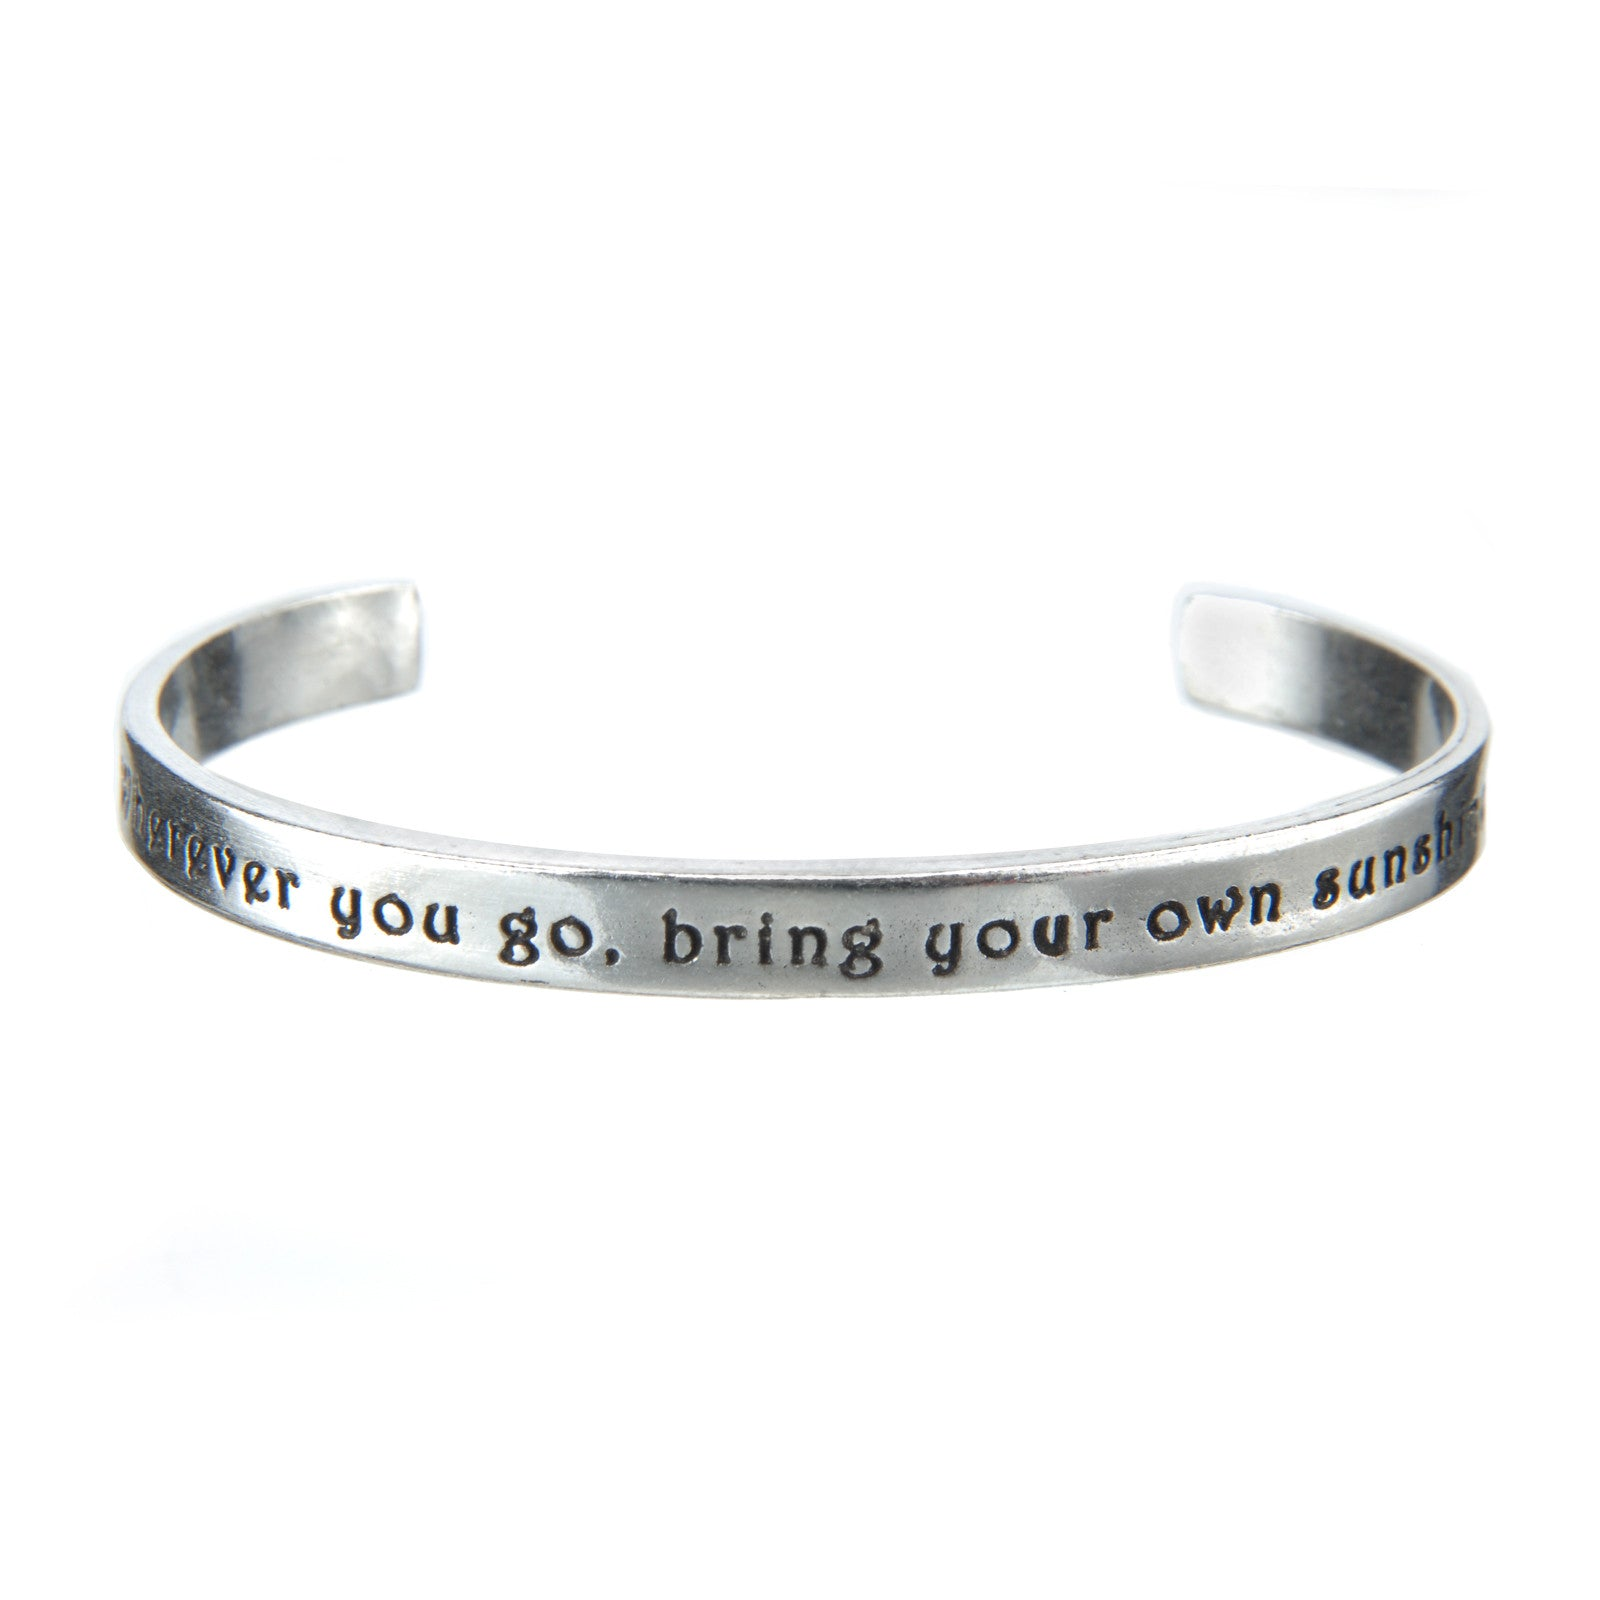 Wherever You Go Quotable Cuff Bracelet - Whitney Howard Designs